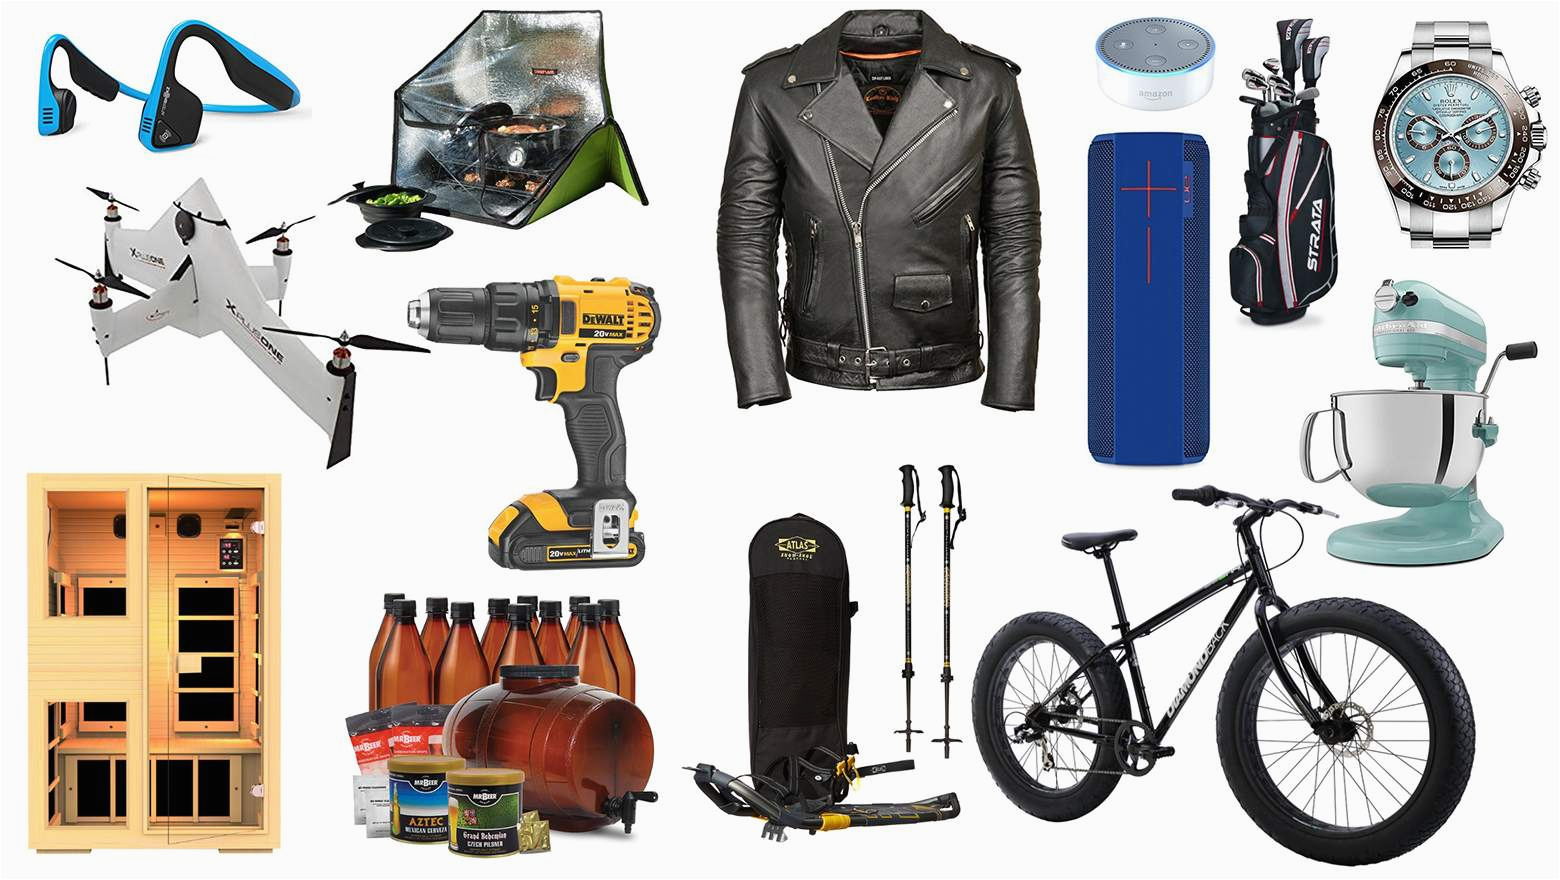 top best awesome christmas gifts unique gifts for him ideas sports outdoor games cooking menswear tech tools toys